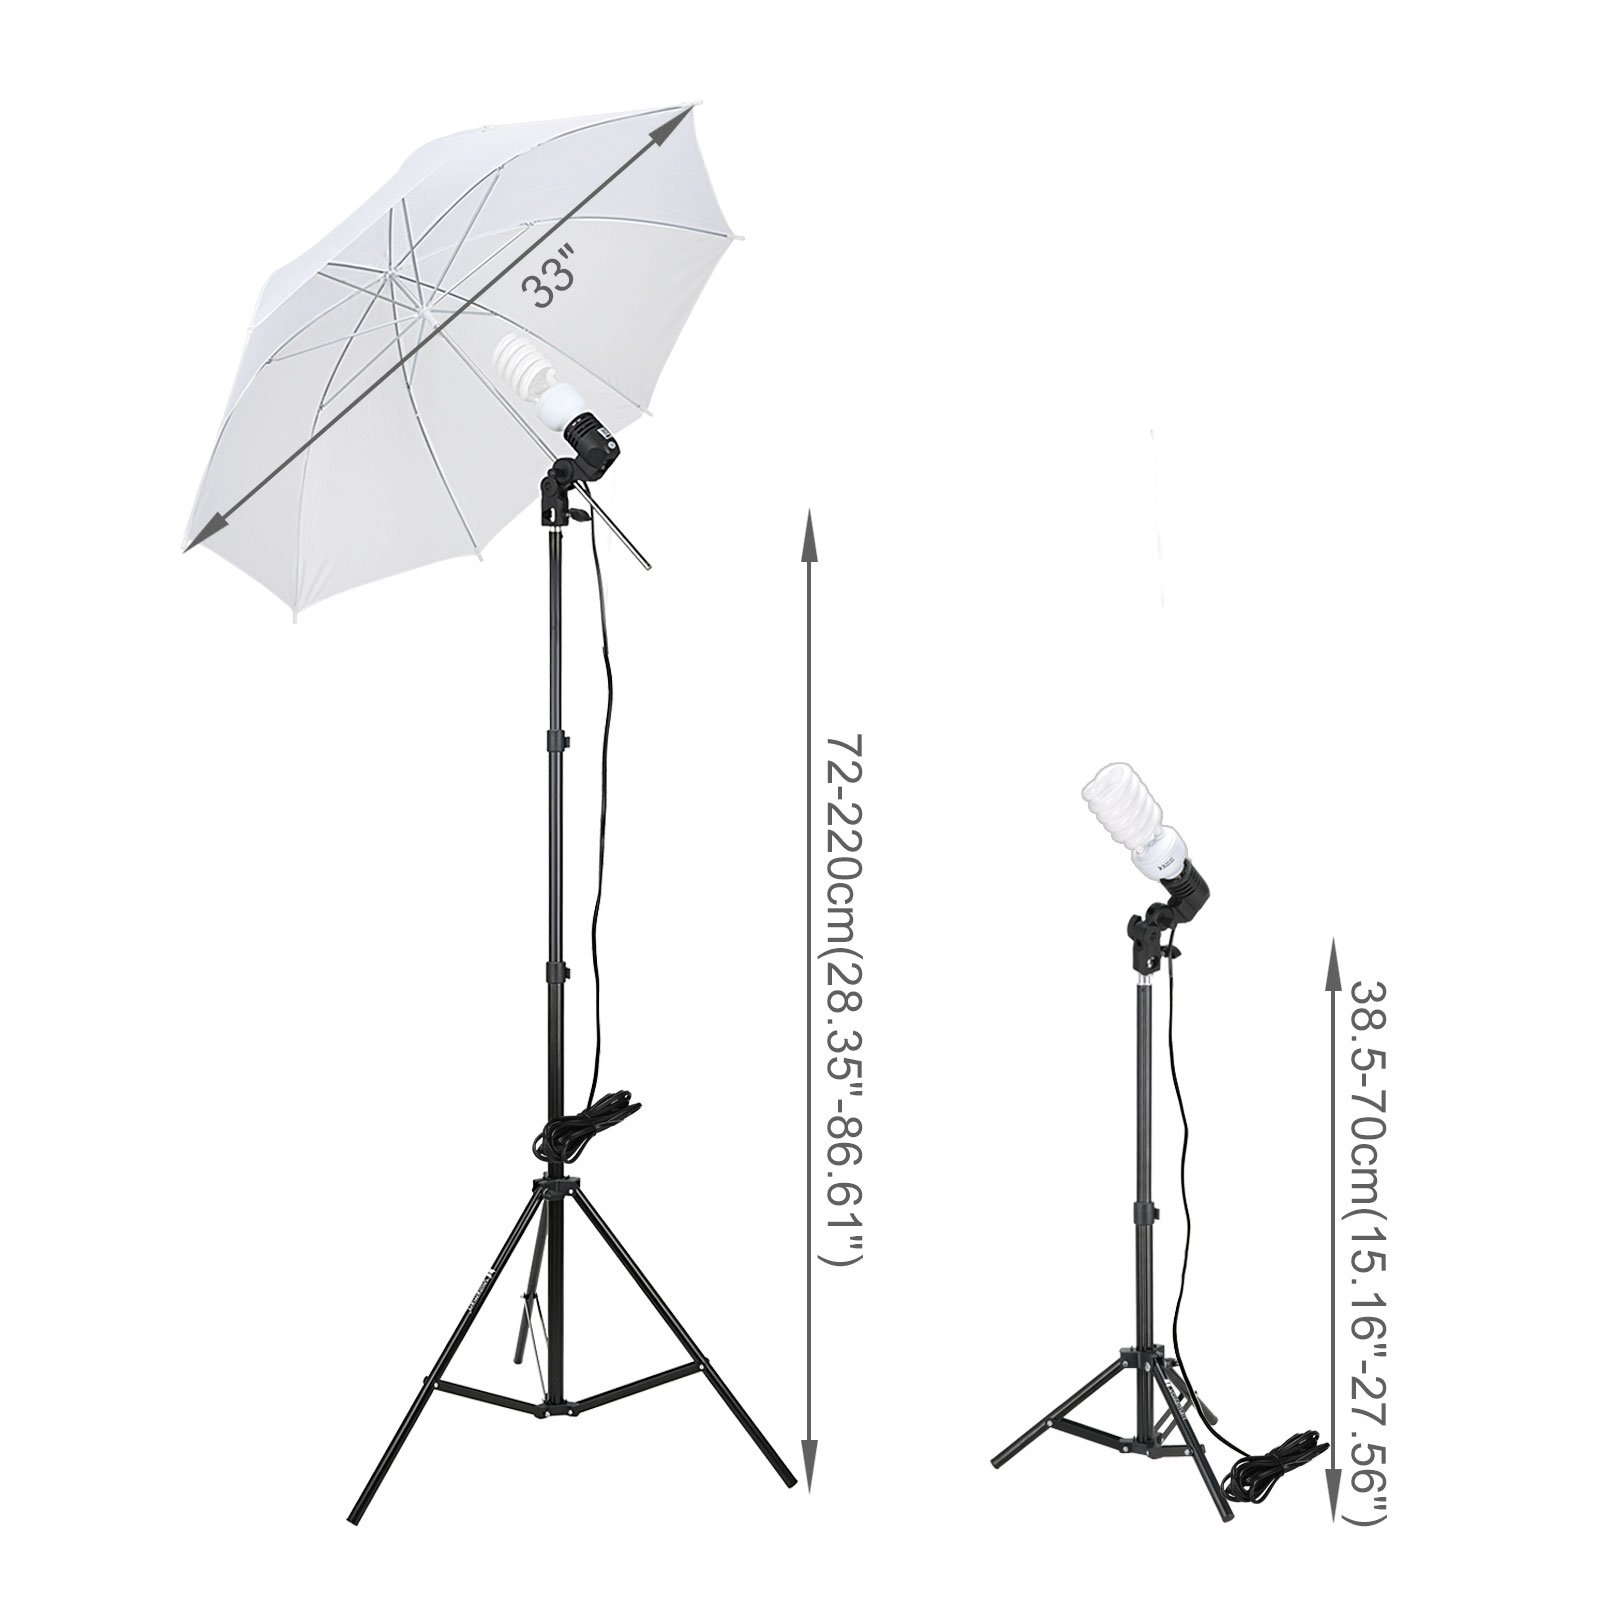 Voilamart Photography Umbrella Lighting Kit Continuous Lighting Soft Umbrella Kit 600W 5500K Day-Light Soft Umbrellas for Portrait Photography Studio and Video Shooting